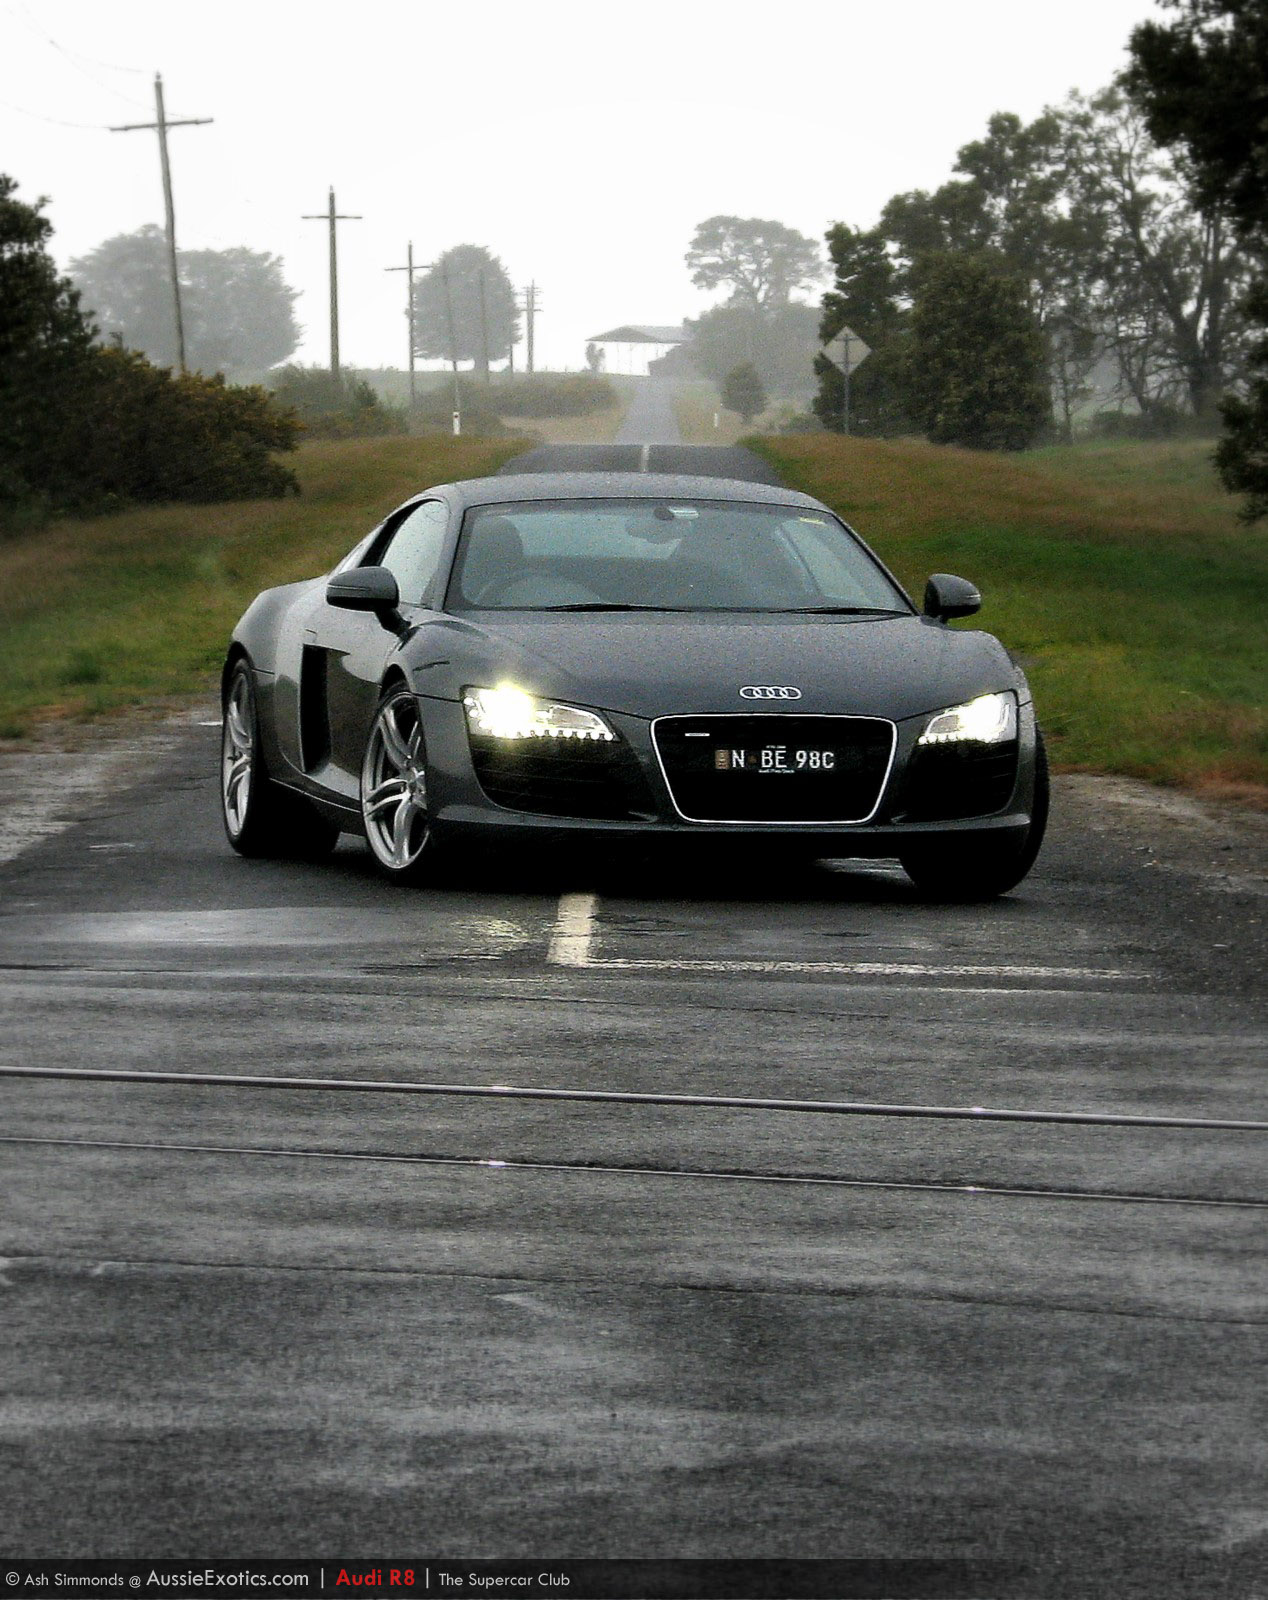 Car Audi R8 - Supercar Club